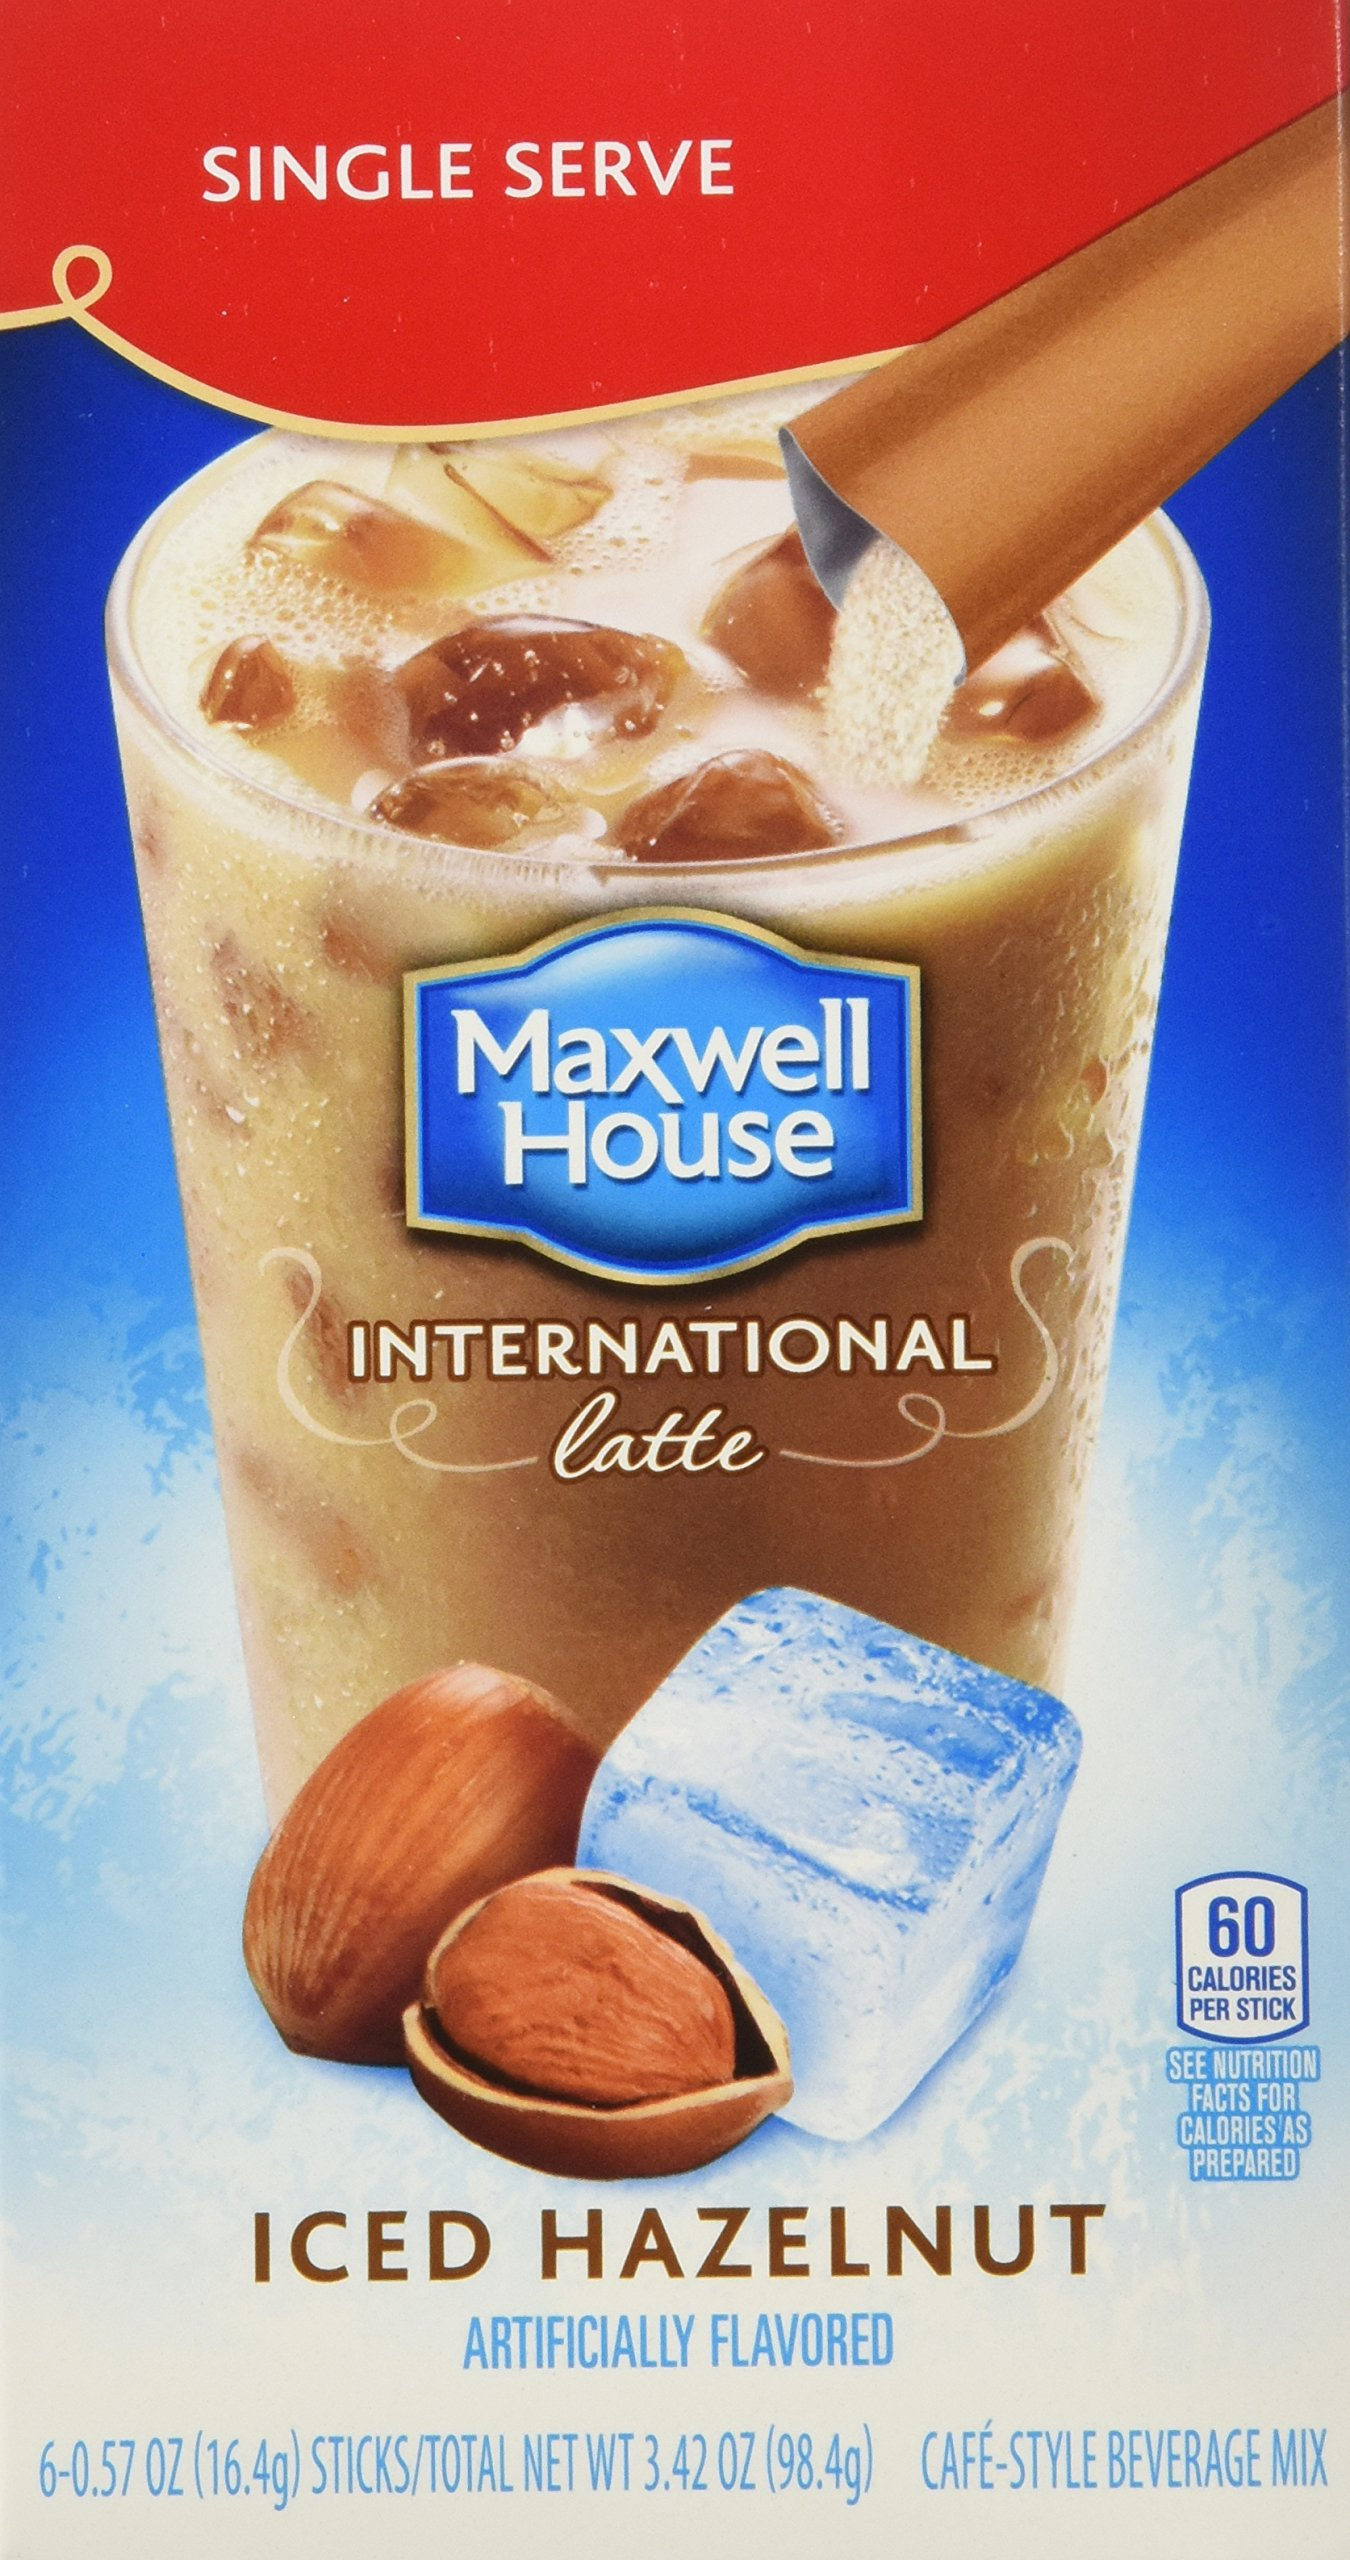 Maxwell House Hazelnut Iced Latte Singles International Cafe (3.42oz Boxes, Pack of 8) by MAXWELL HOUSE